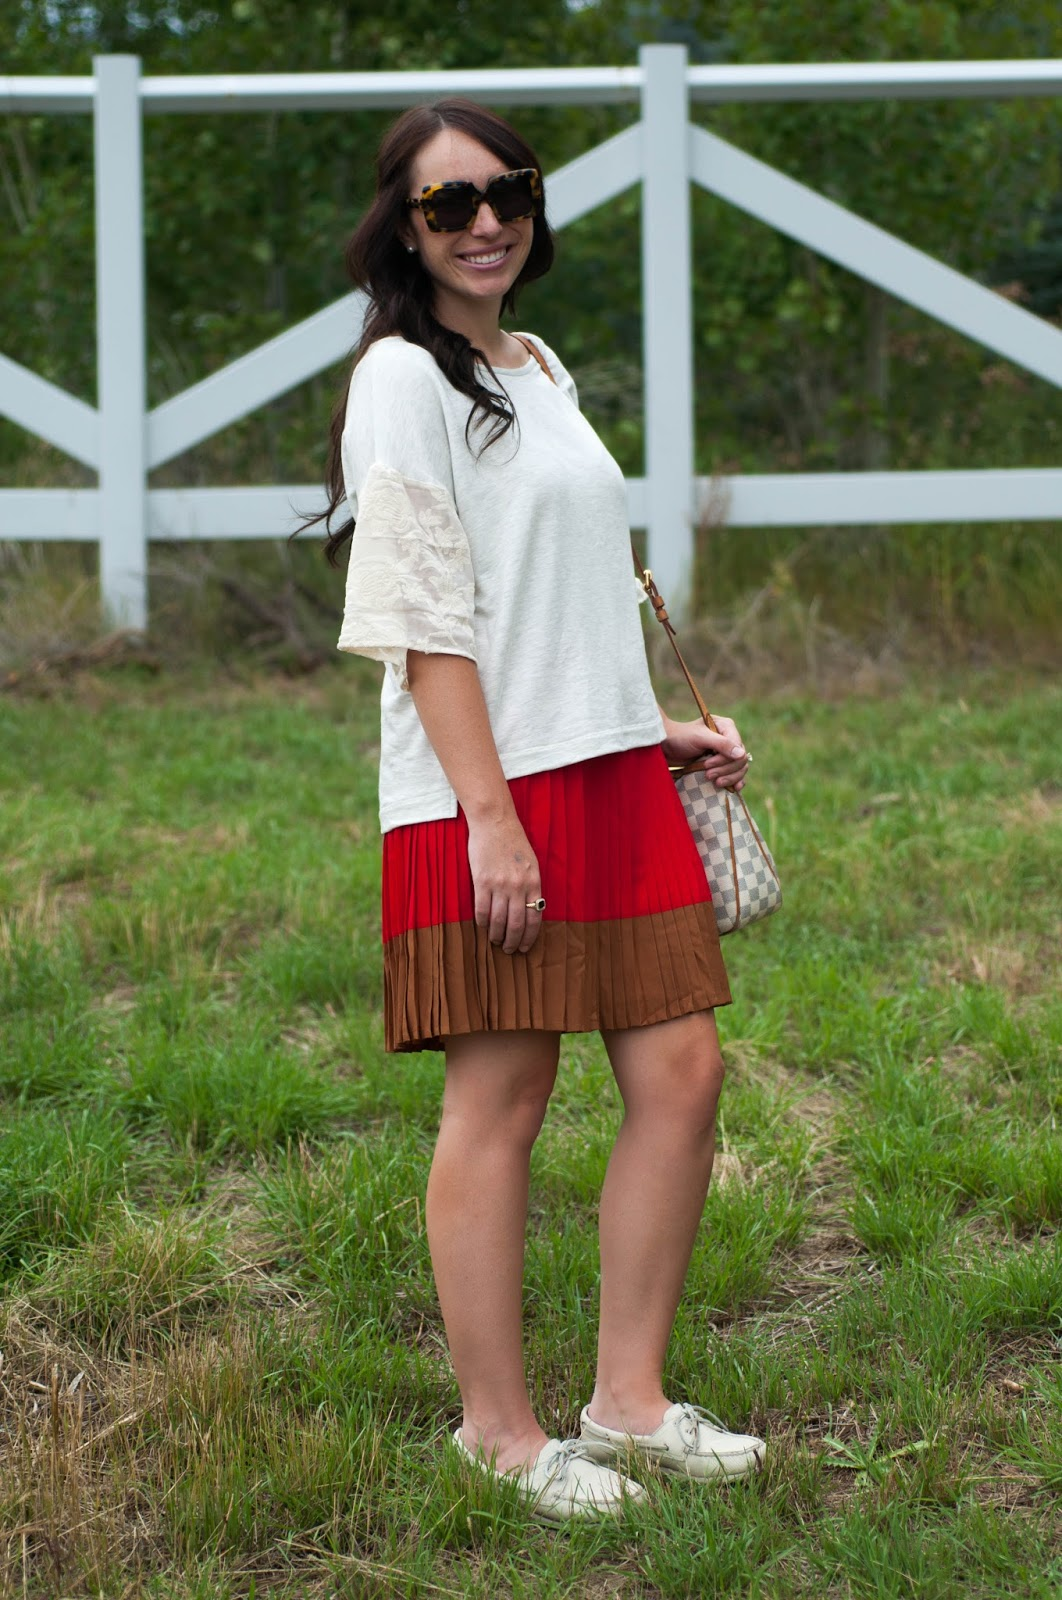 womens fashion blog, ootd blog, anthropologie ootd, sperry topsider, lace top, lands end skirt